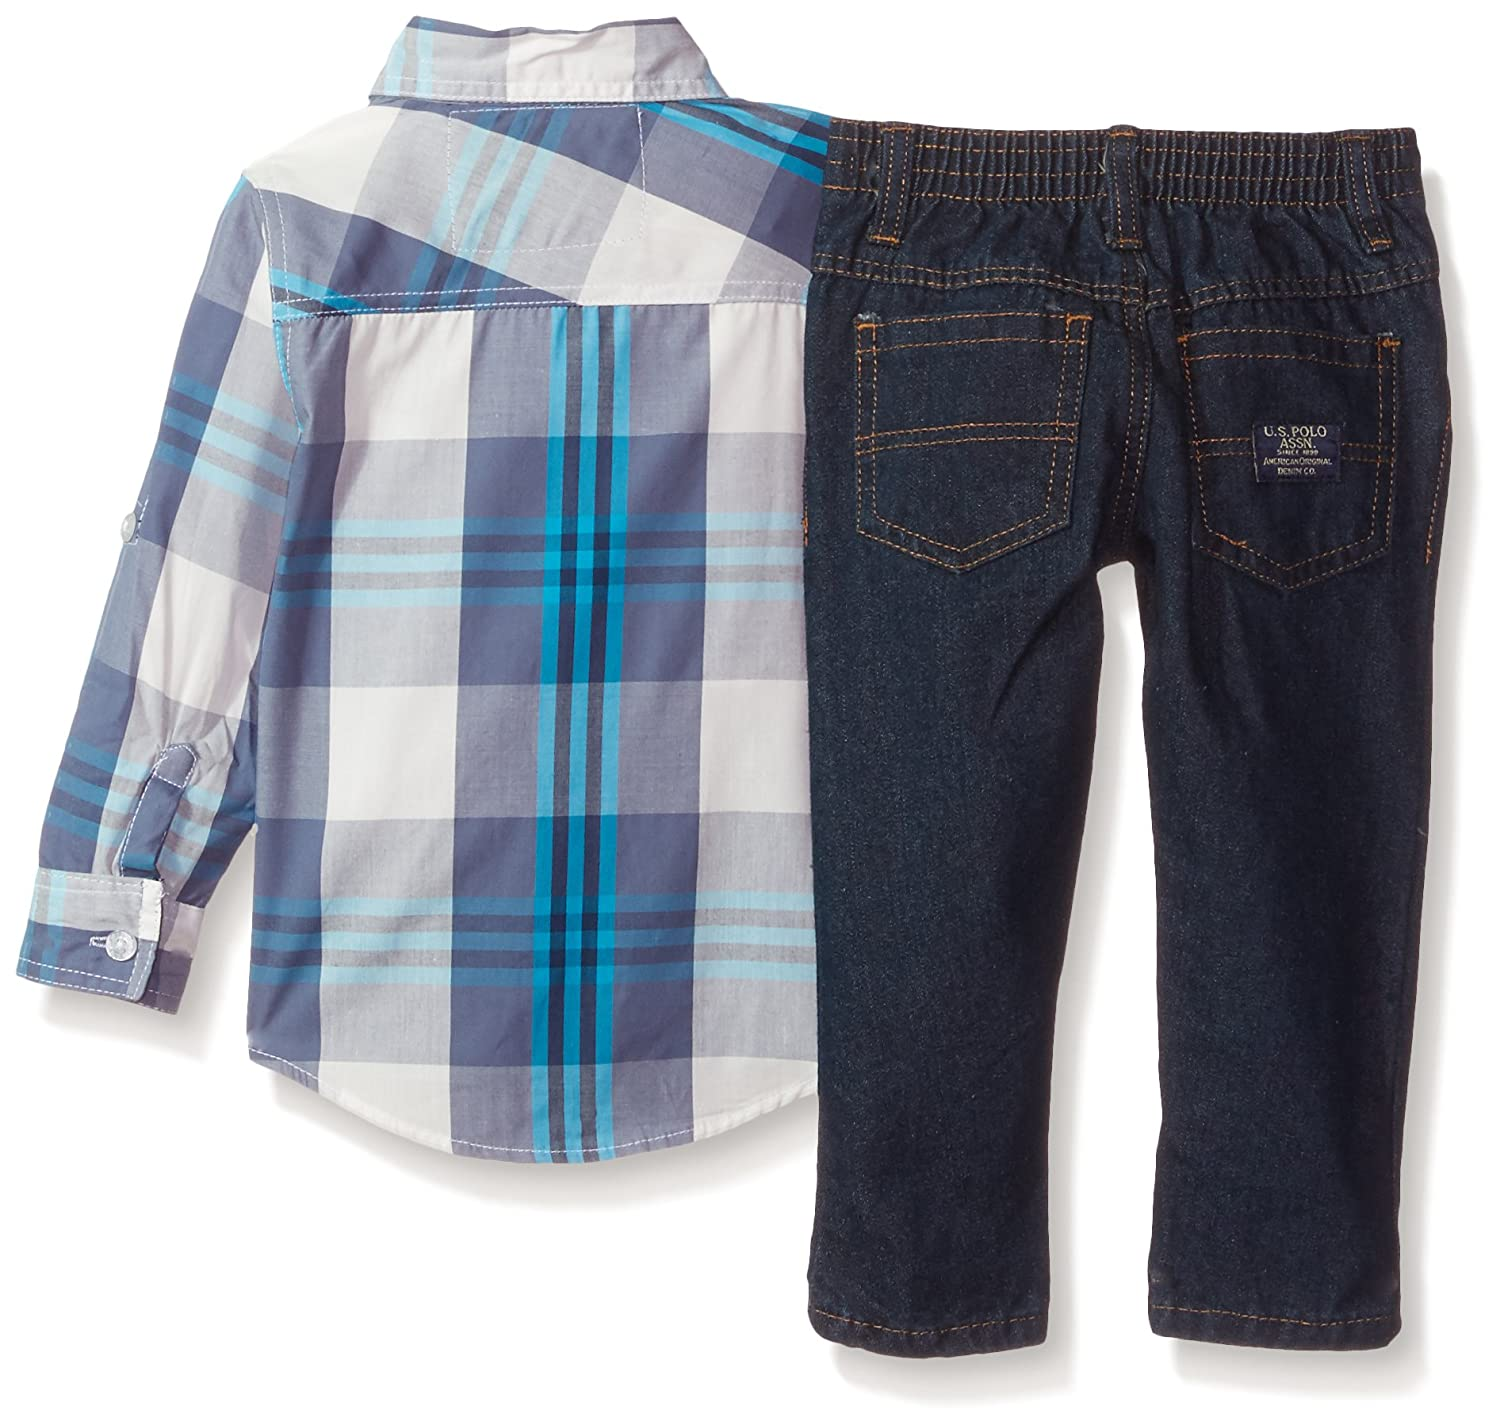 Polo Assn Boys Long Sleeve T-Shirt and Pant Set Multi Plaid 2T P406740M1 U.S